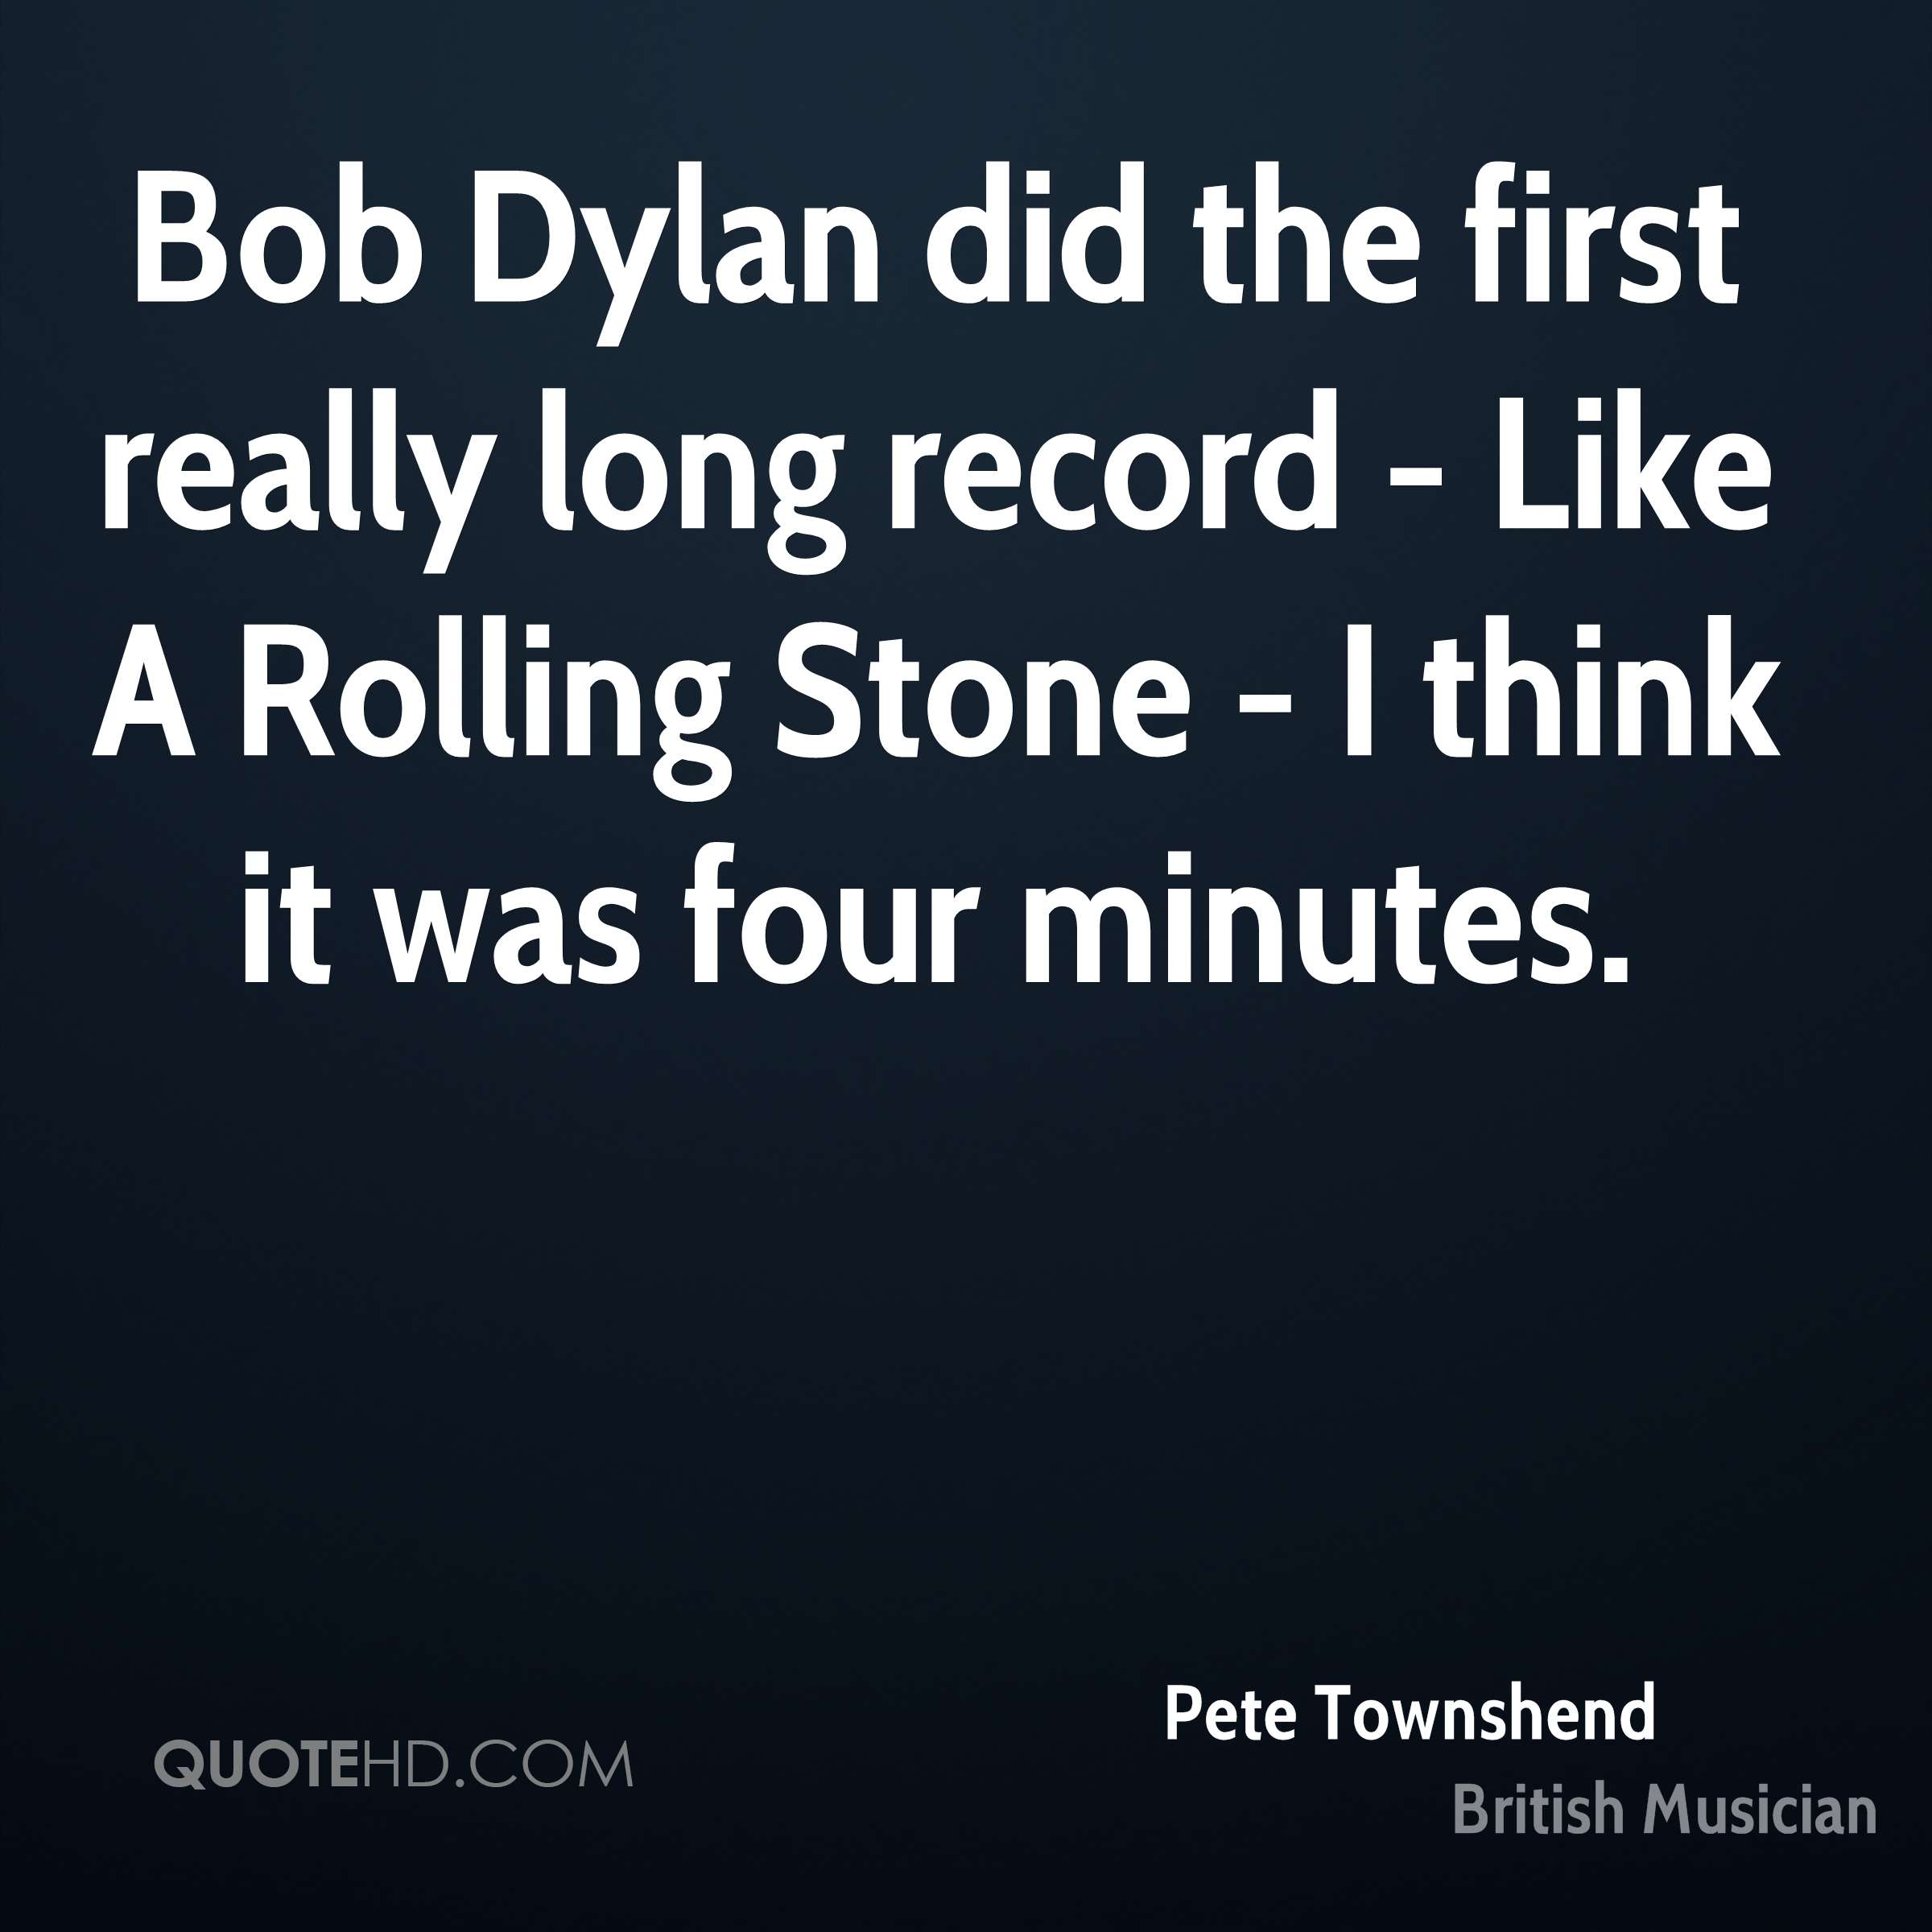 Bob Dylan did the first really long record - Like A Rolling Stone - I think it was four minutes.